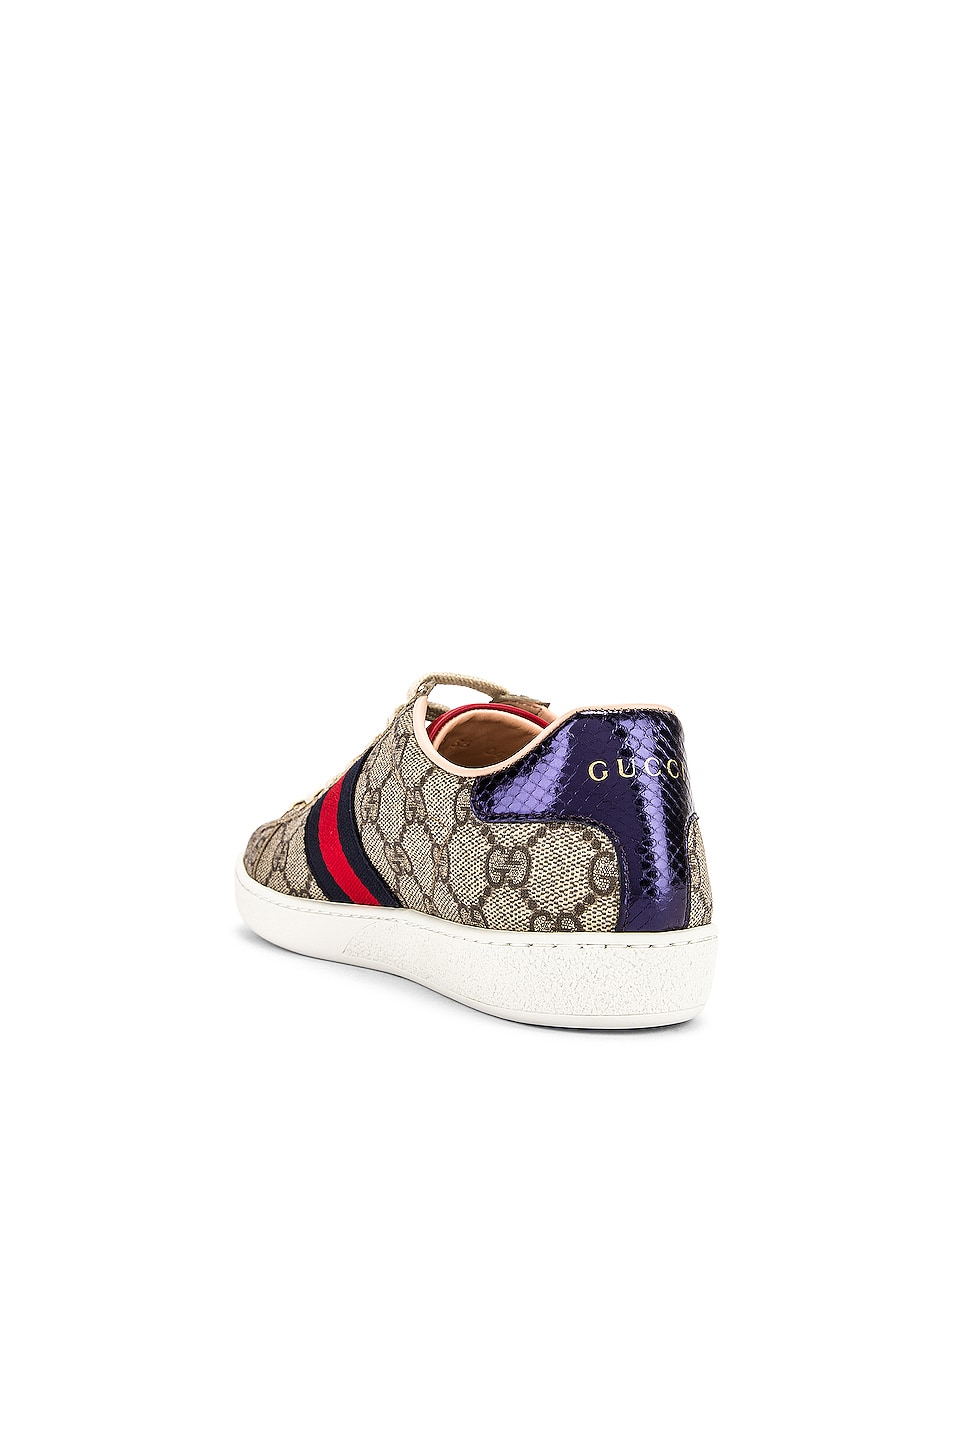 Image 4 of Gucci New Ace GG Sneakers in Beige Ebony & Red